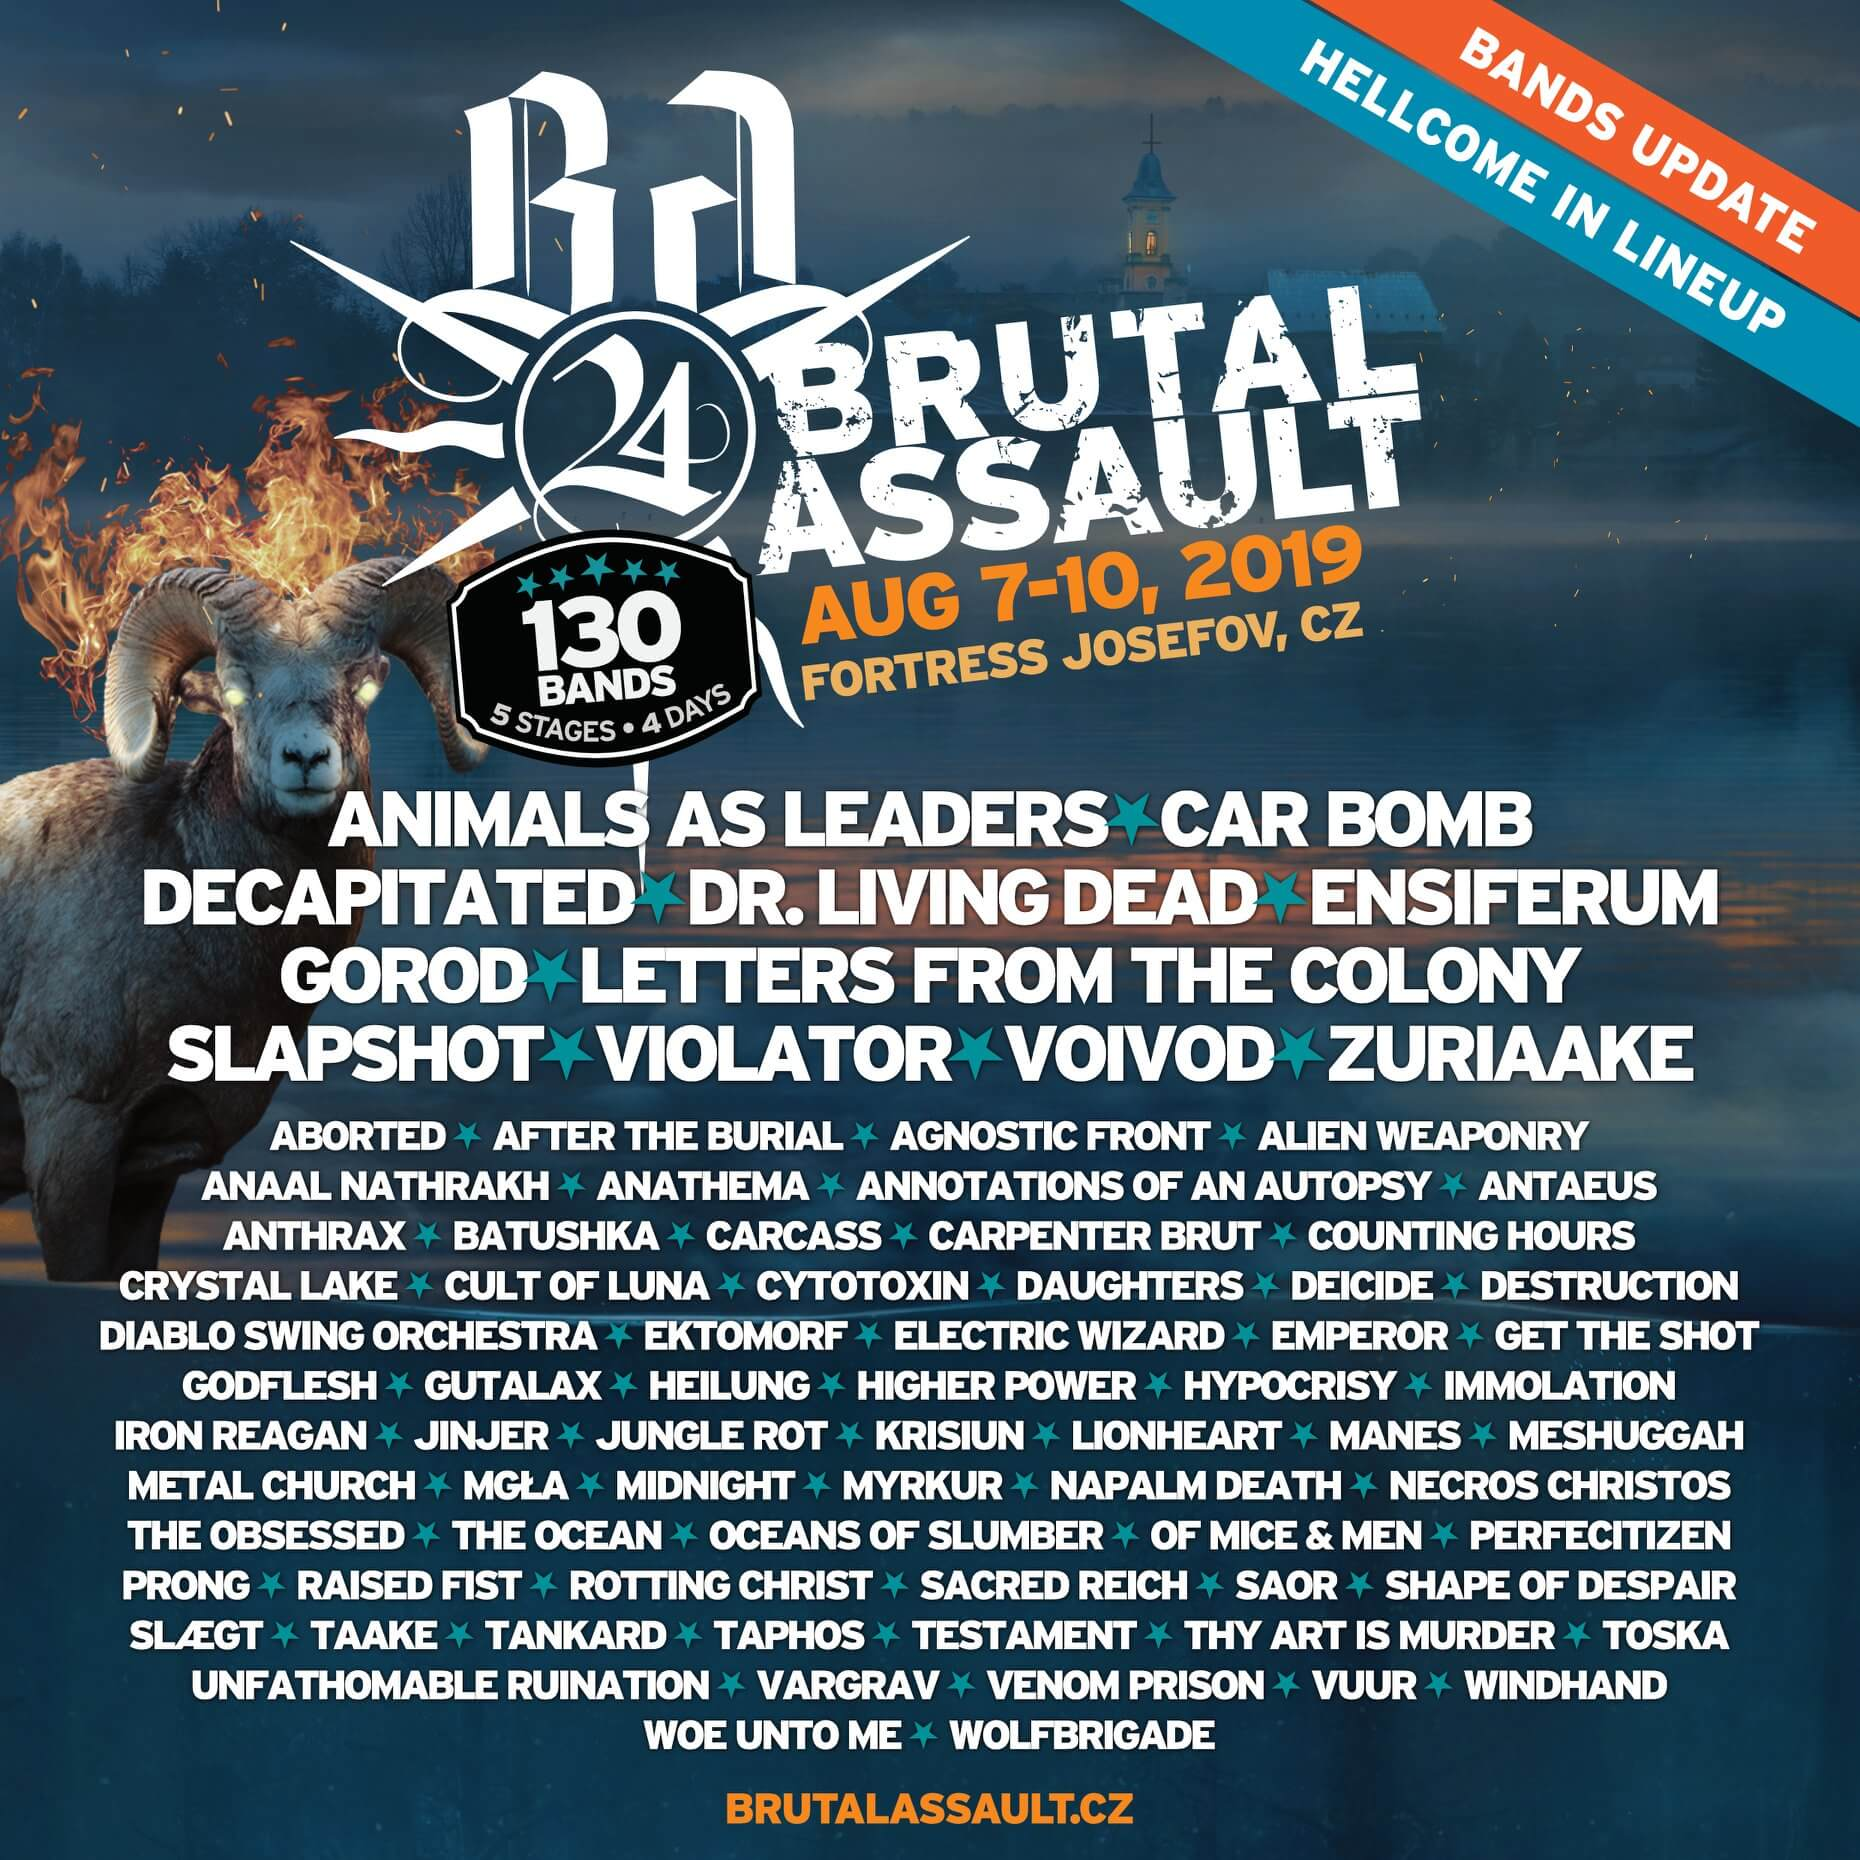 Brutal Assault announcement Jan 9